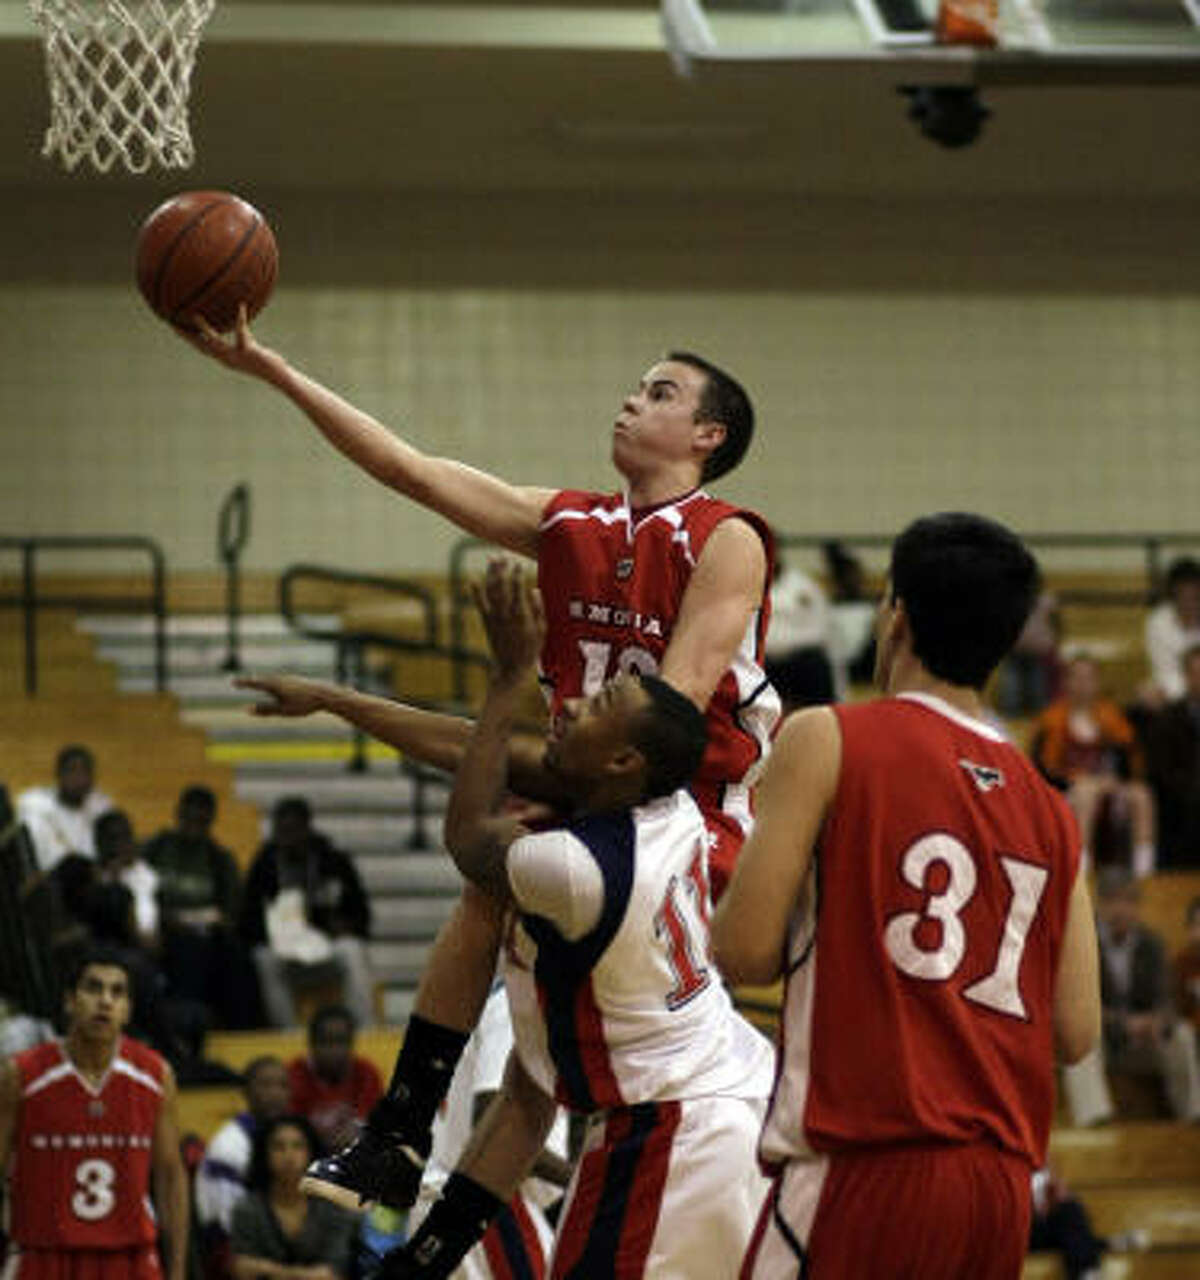 Memorial's Parker Troutner drives to the basket over Alief Taylor's Marquise Wells.